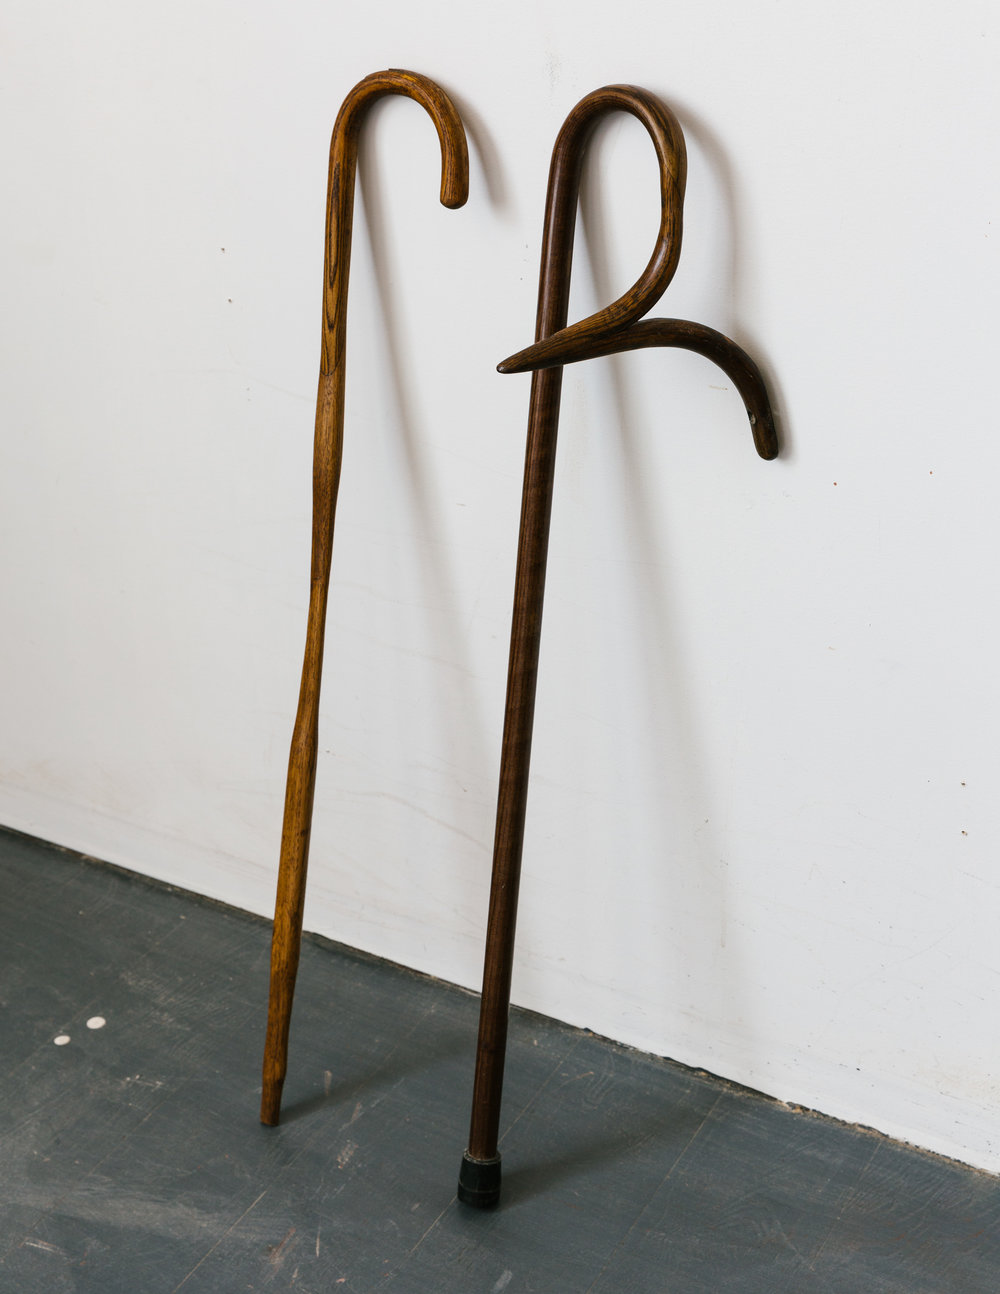 Found cane and three hammer handles, 2018  The Mountains are Calling | Found wood cane, chair parts, rubber, 2018, 38 x 7 x 6.5 inches